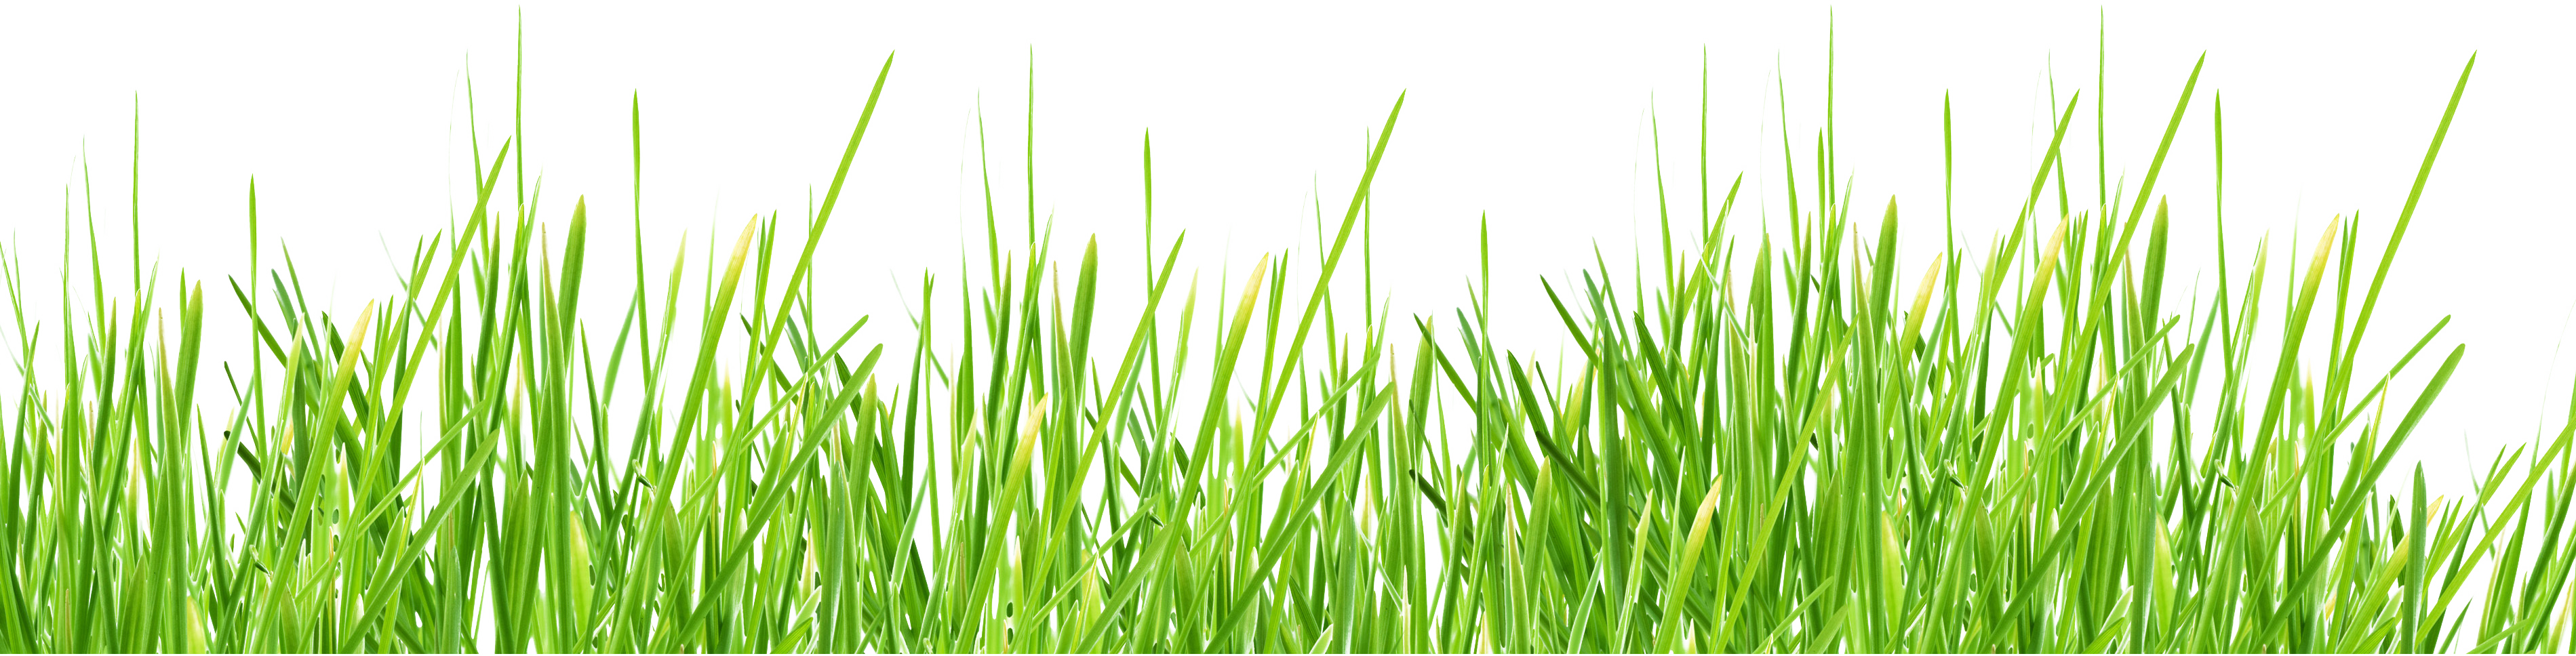 grass png image, green picture